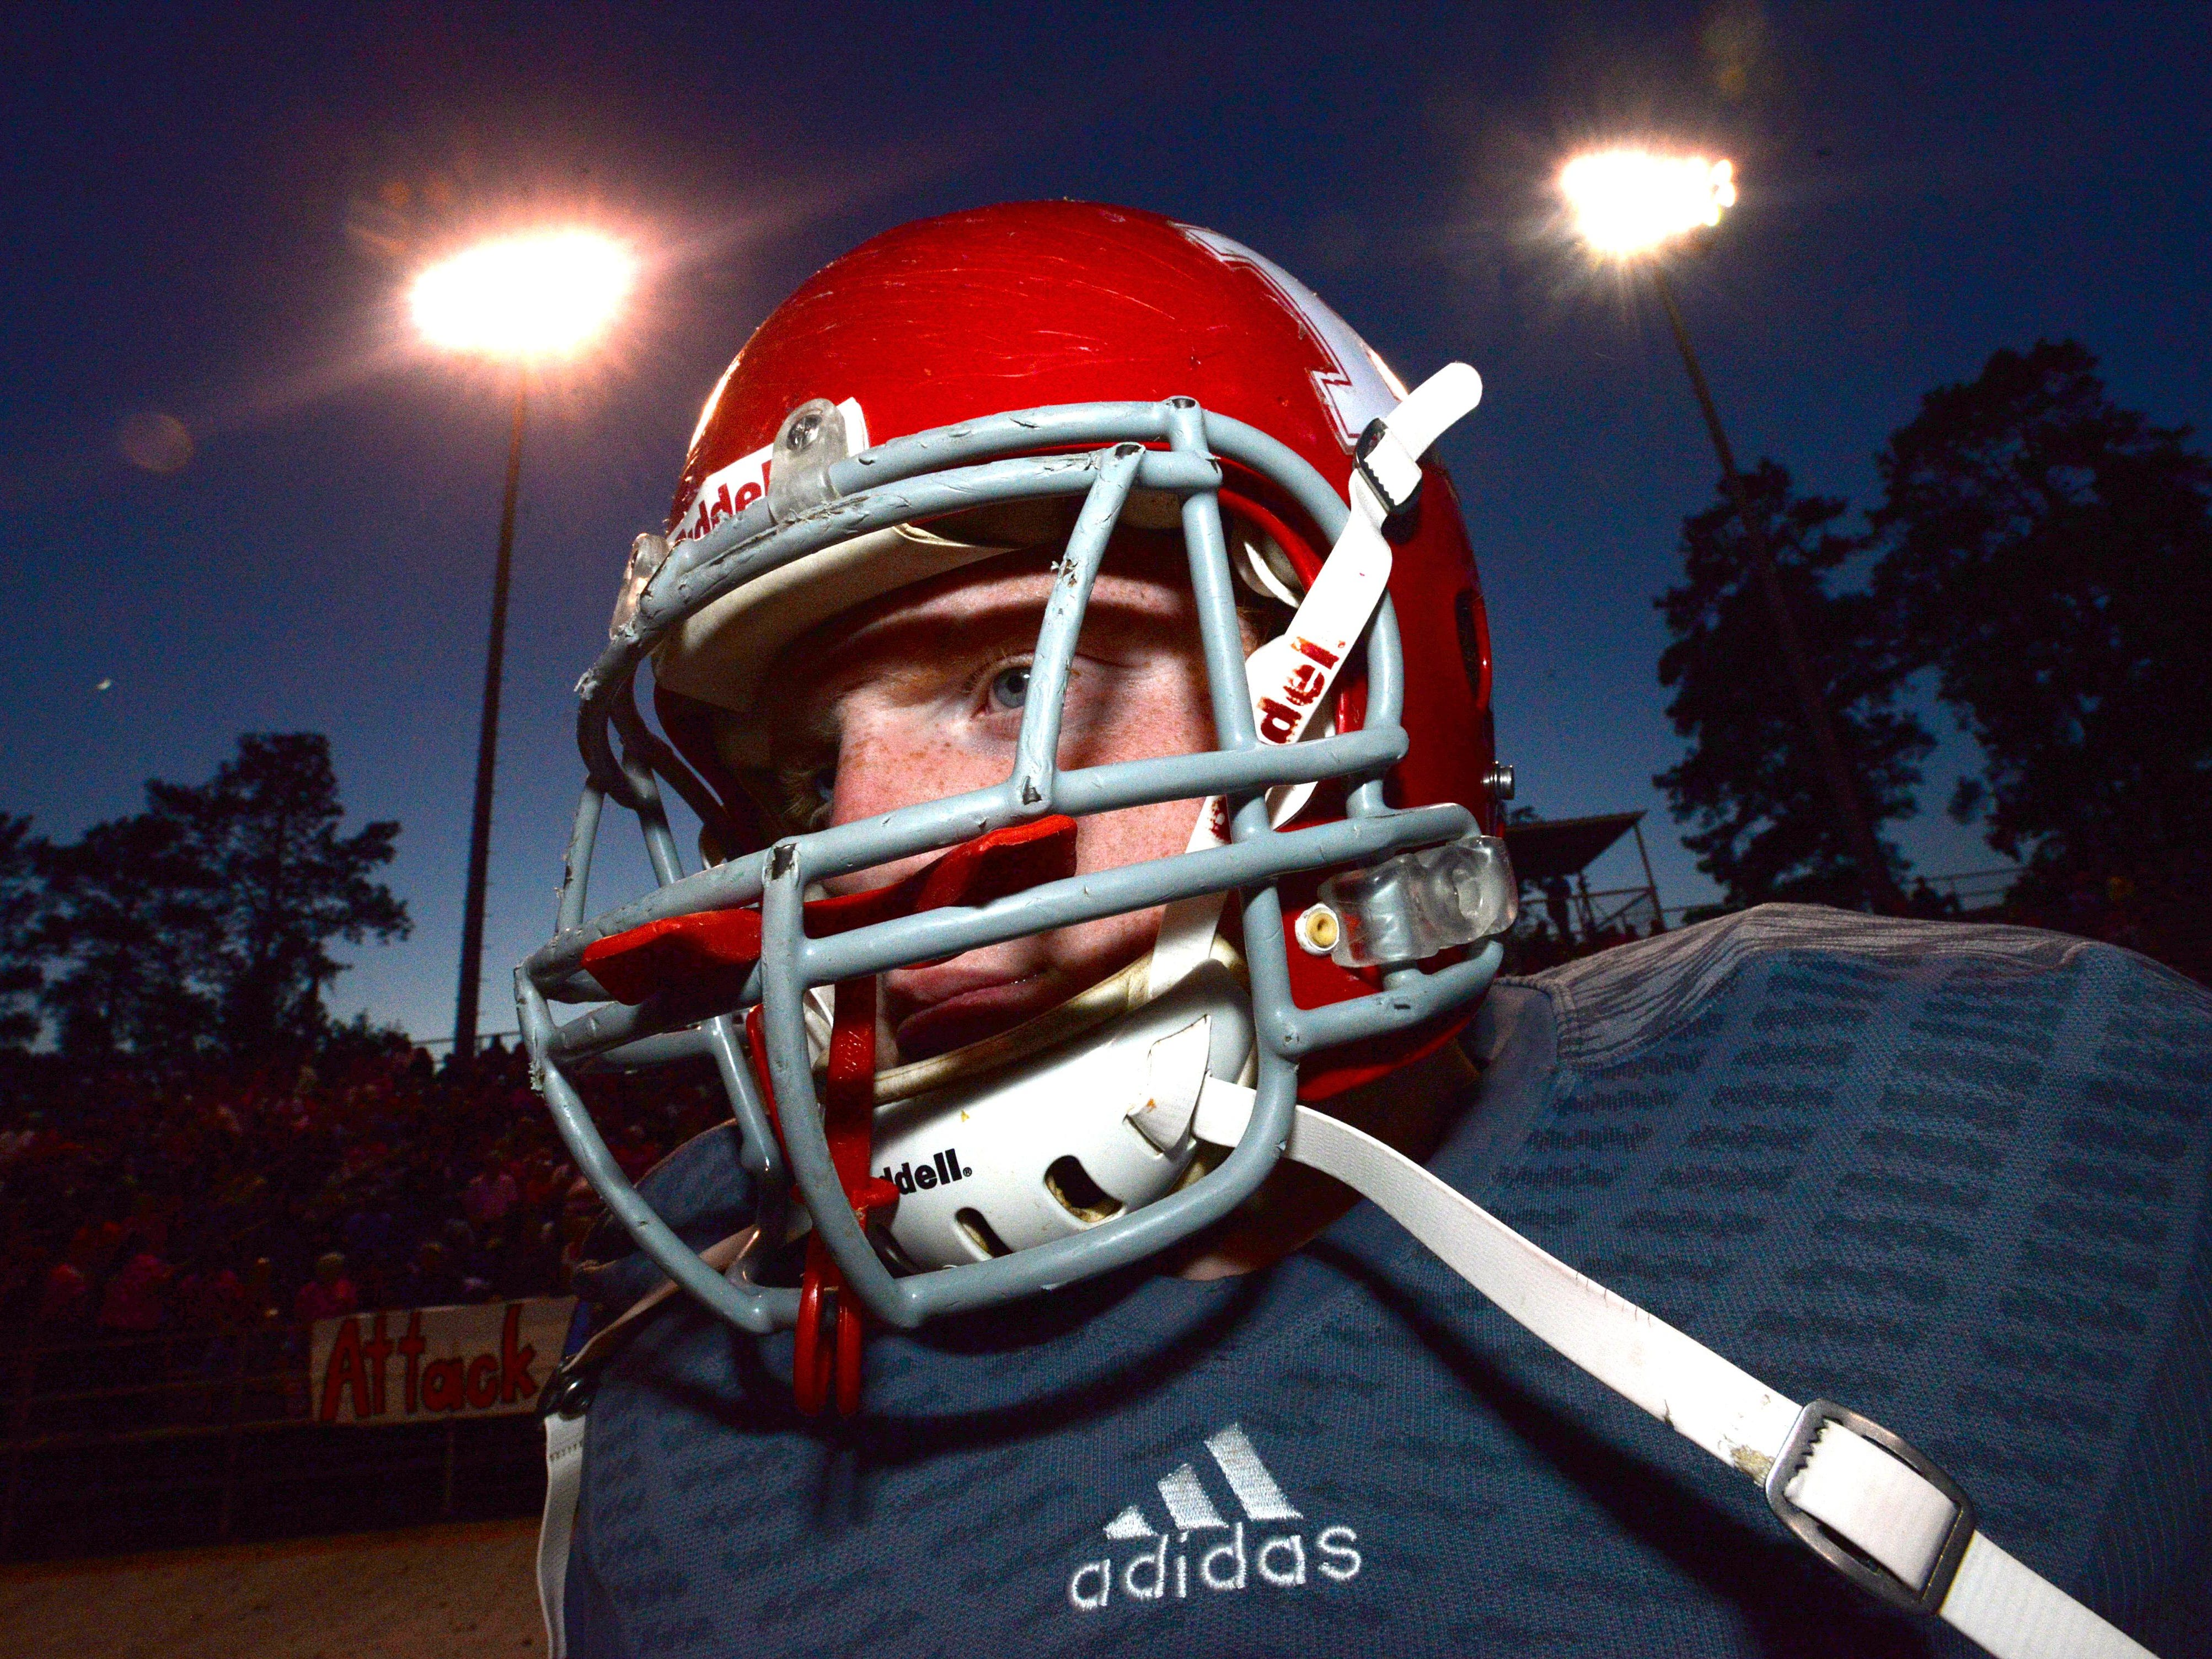 Haughton center Jonathon McClesky has his helmet on as he prepares to take the field against Airline High School.\